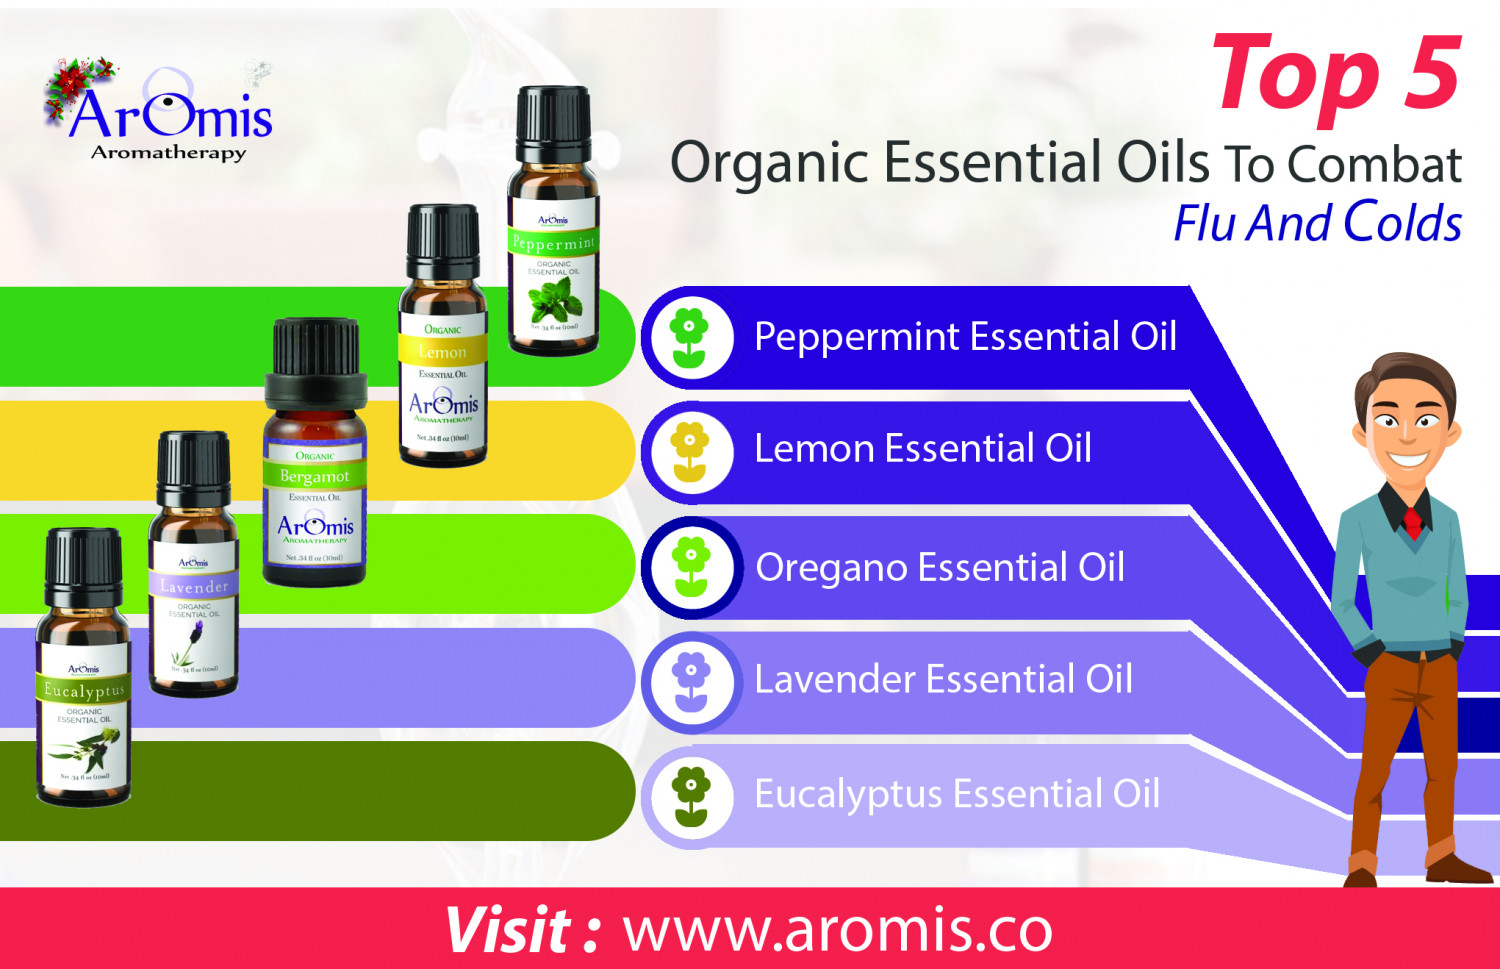 Top 5 Organic Essential Oils To Combat Flu and Colds Infographic